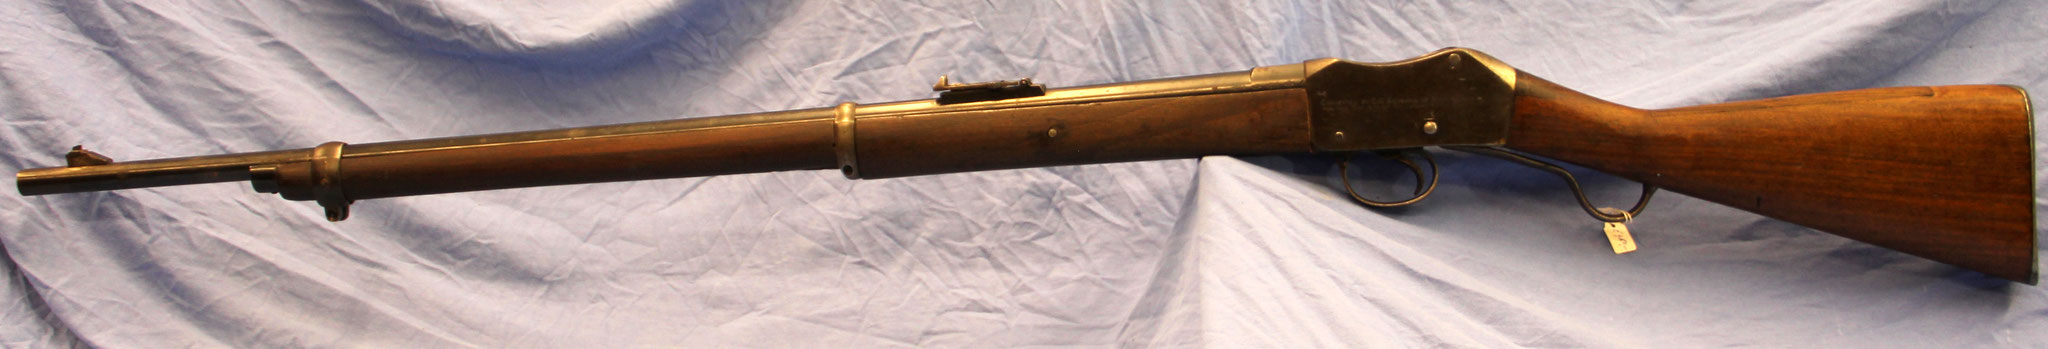 "Enfield Martini Henry, ""converted by C.G. Bonehill of Birmingham for the society of miniature rifle clubs"". € 450,-"